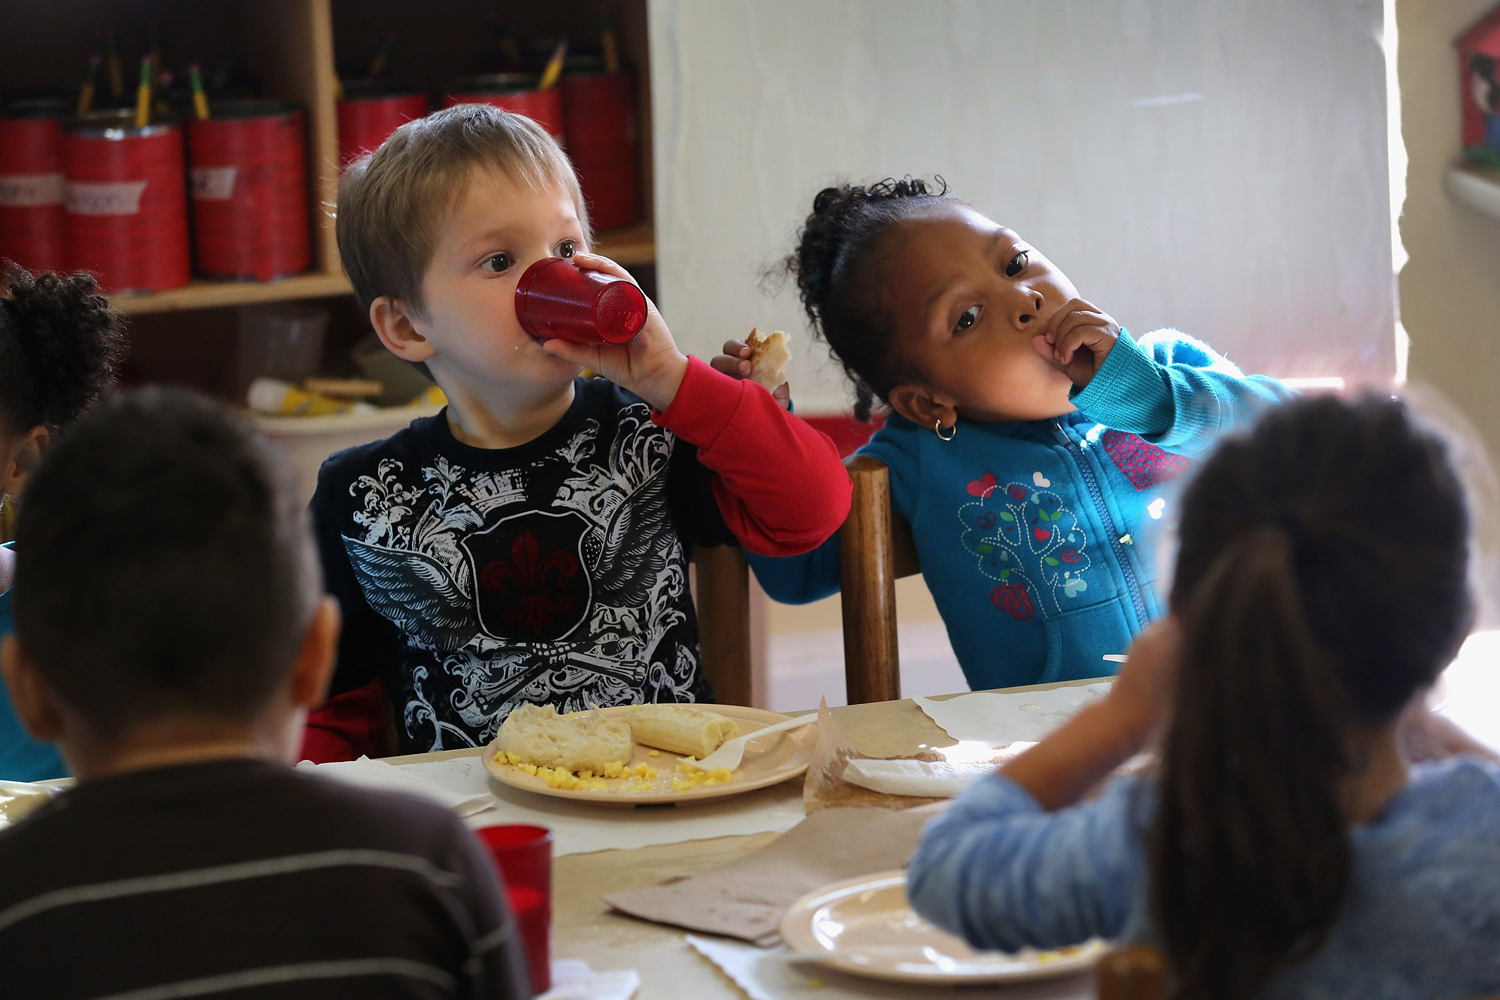 WOODBOURNE, NY - SEPTEMBER 20:  Children eat breakfast at the federally-funded Head Start Program school on September 20, 2012 in Woodbourne, New York...